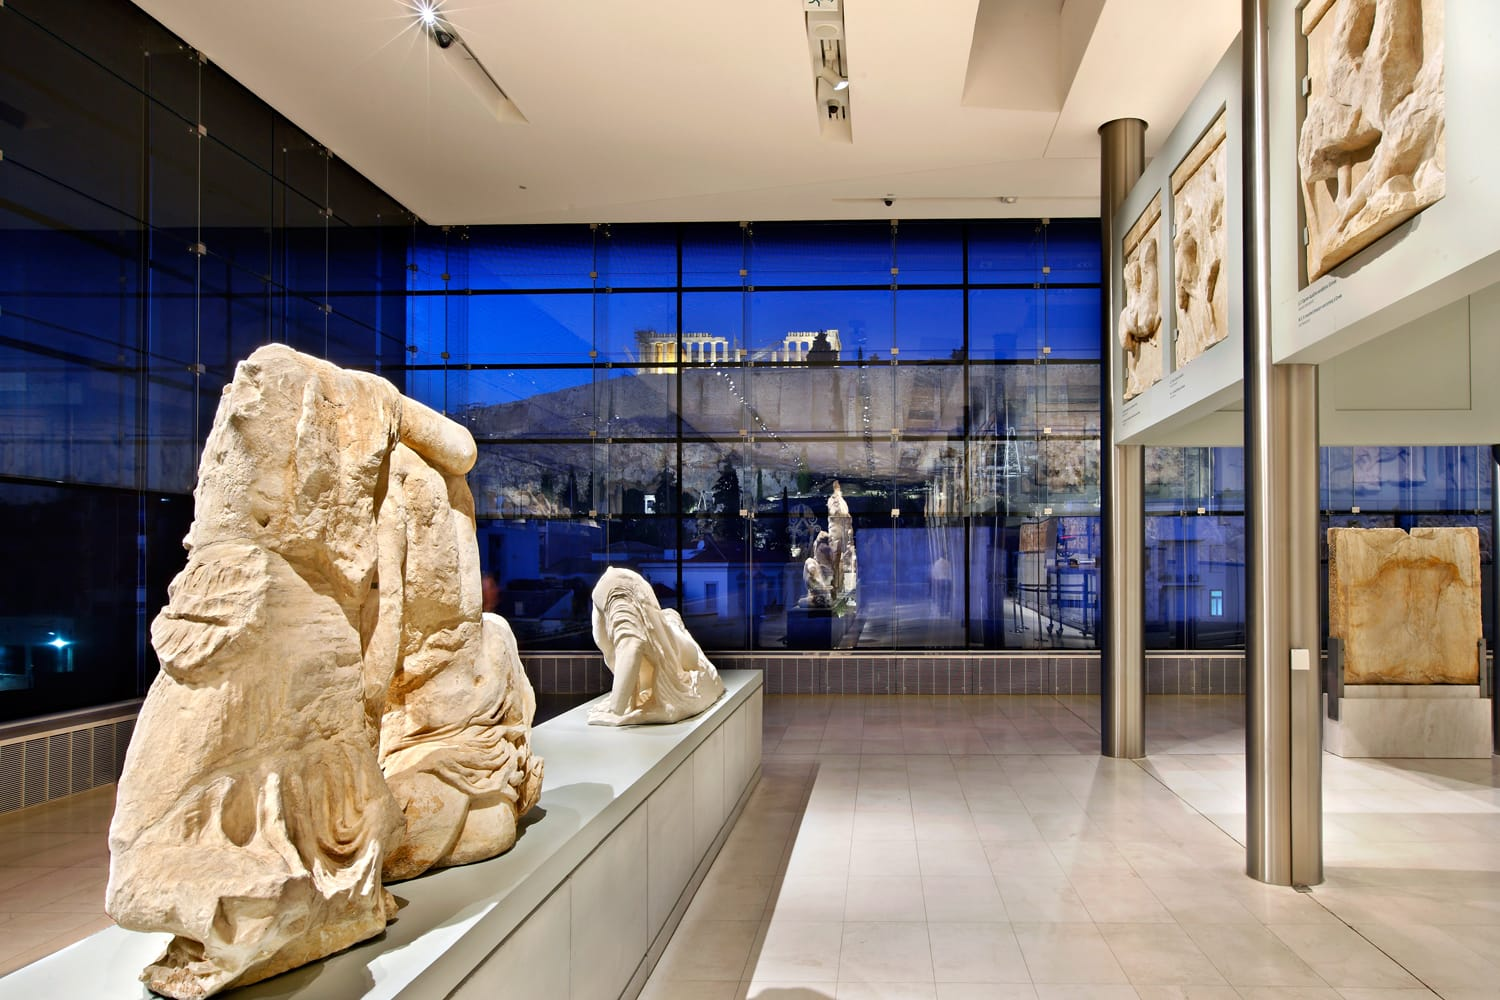 Inside view of the (new) Acropolis museum (part of the Parthenon gallery on the 3rd floor). In the background, through the glass you can see the Acropolis. Athens, Greece